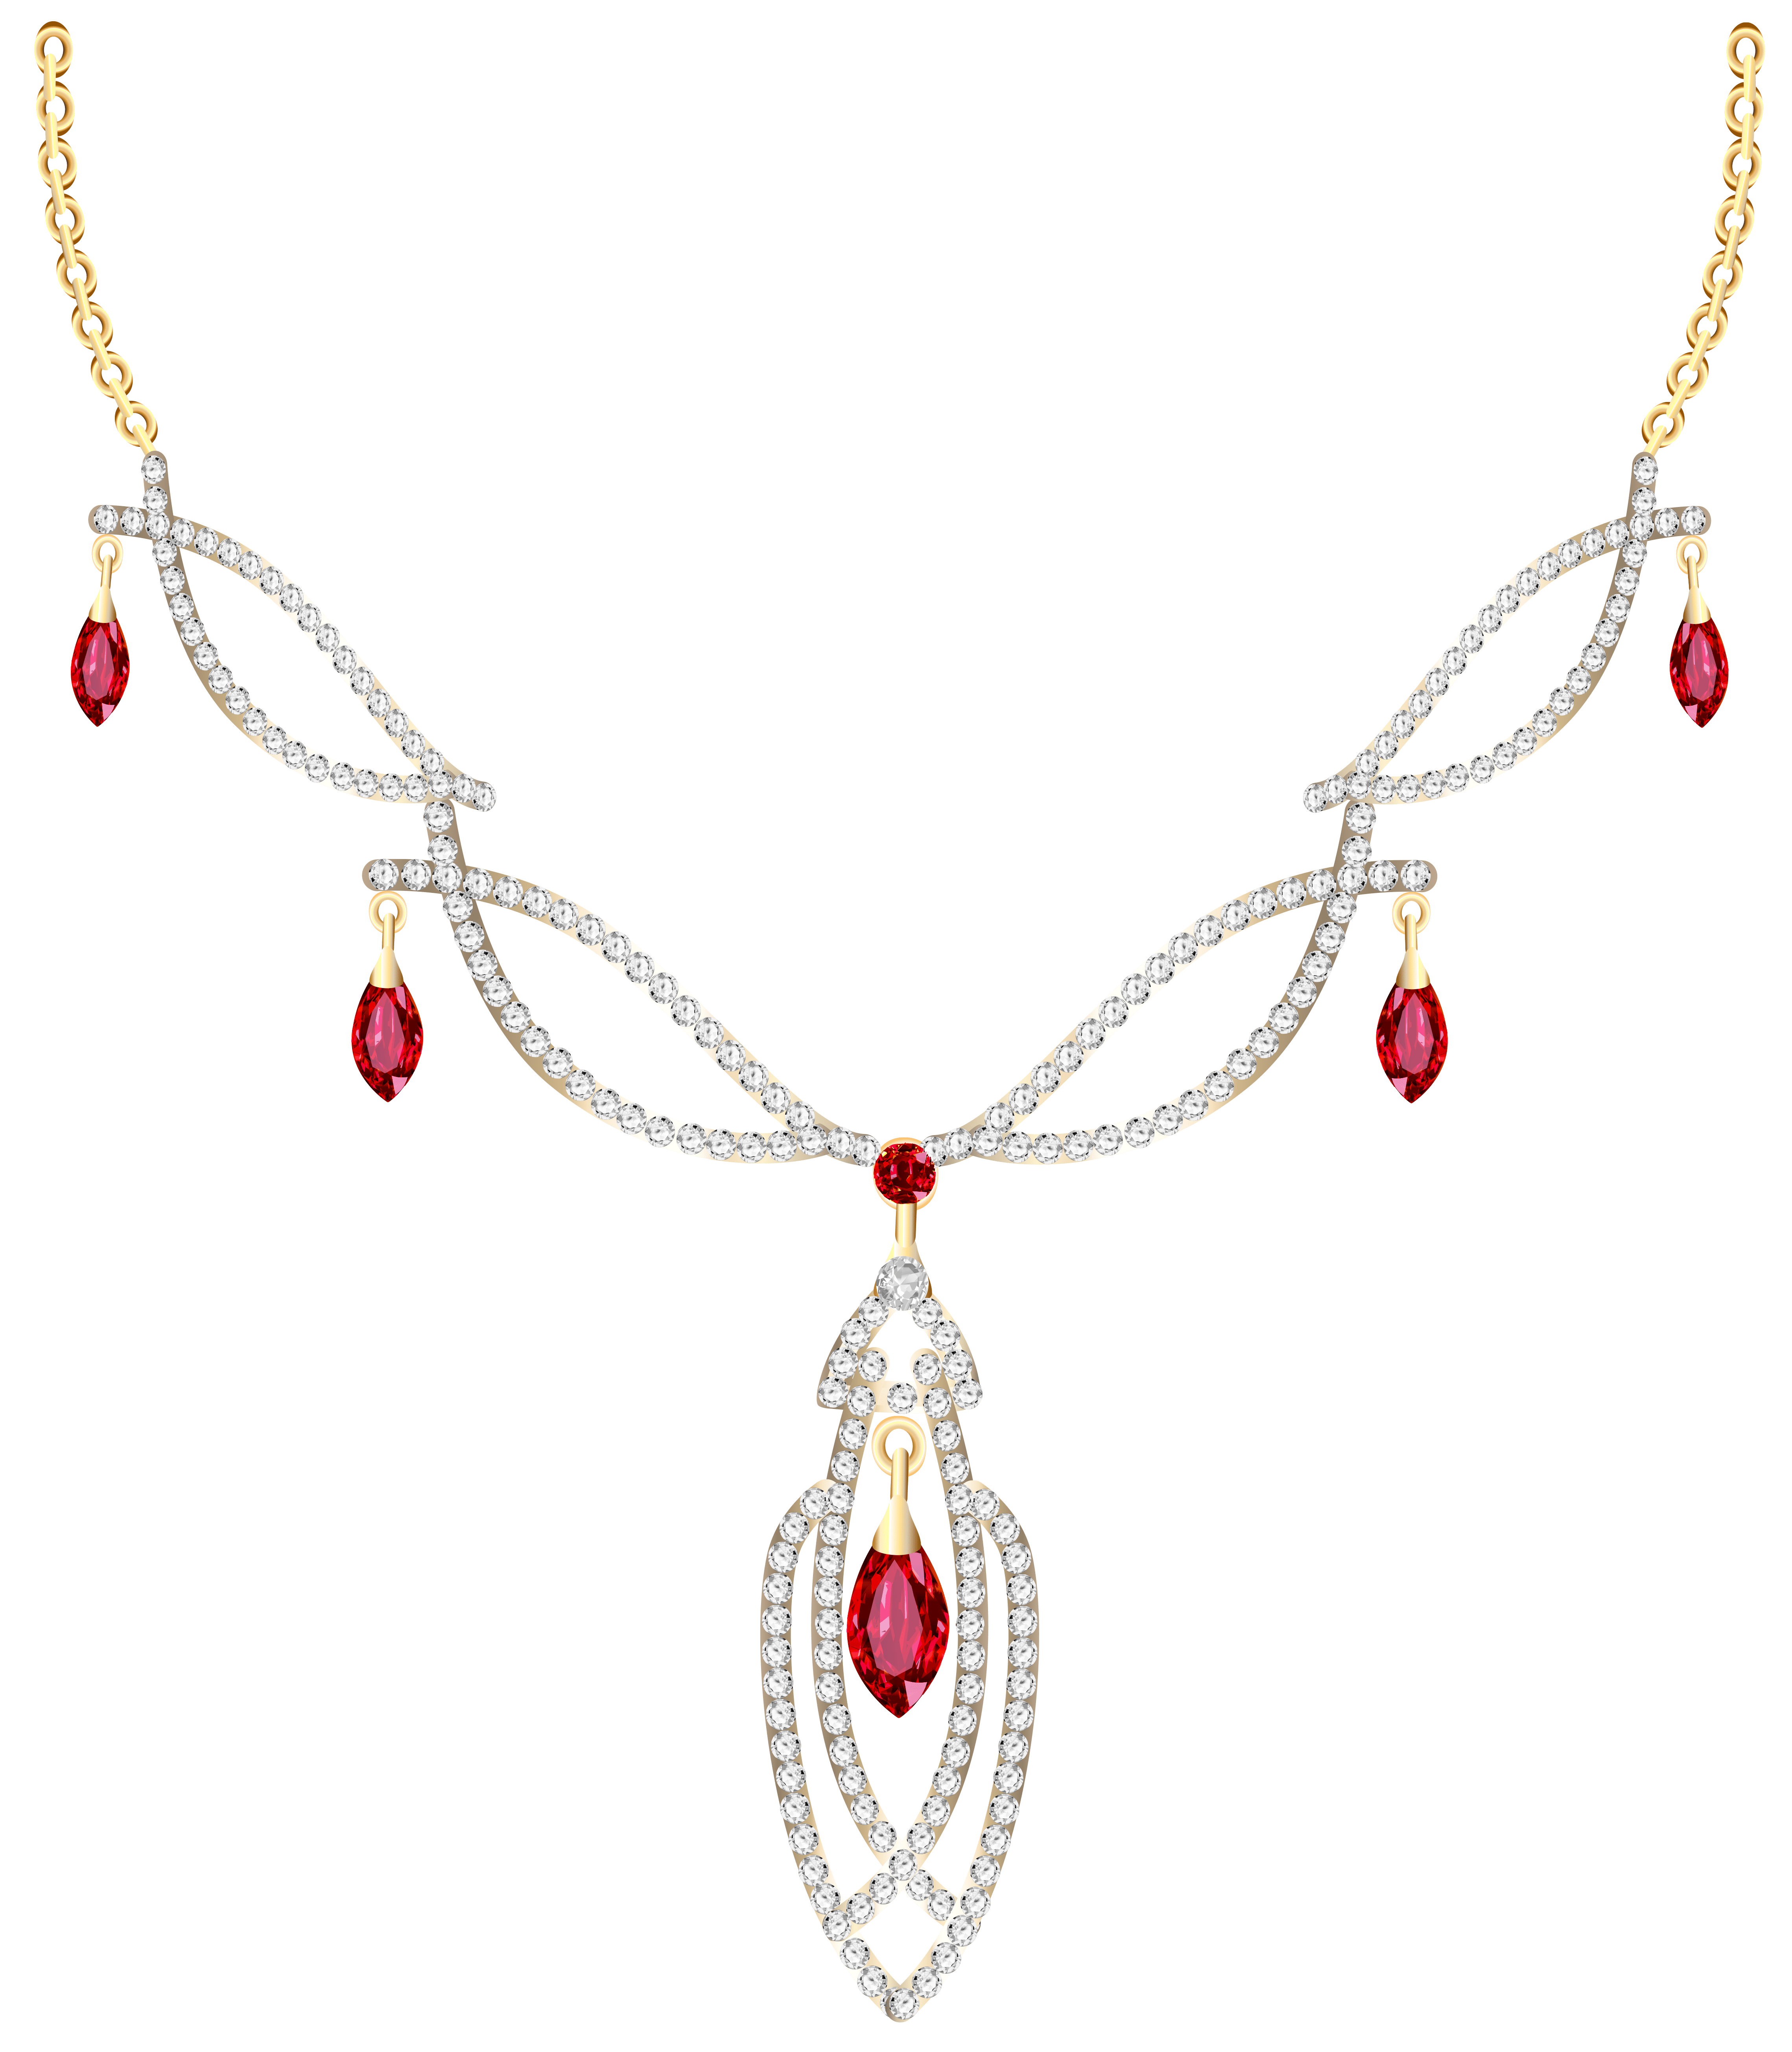 Free Necklace Cliparts Download Free Clip Art Free Clip